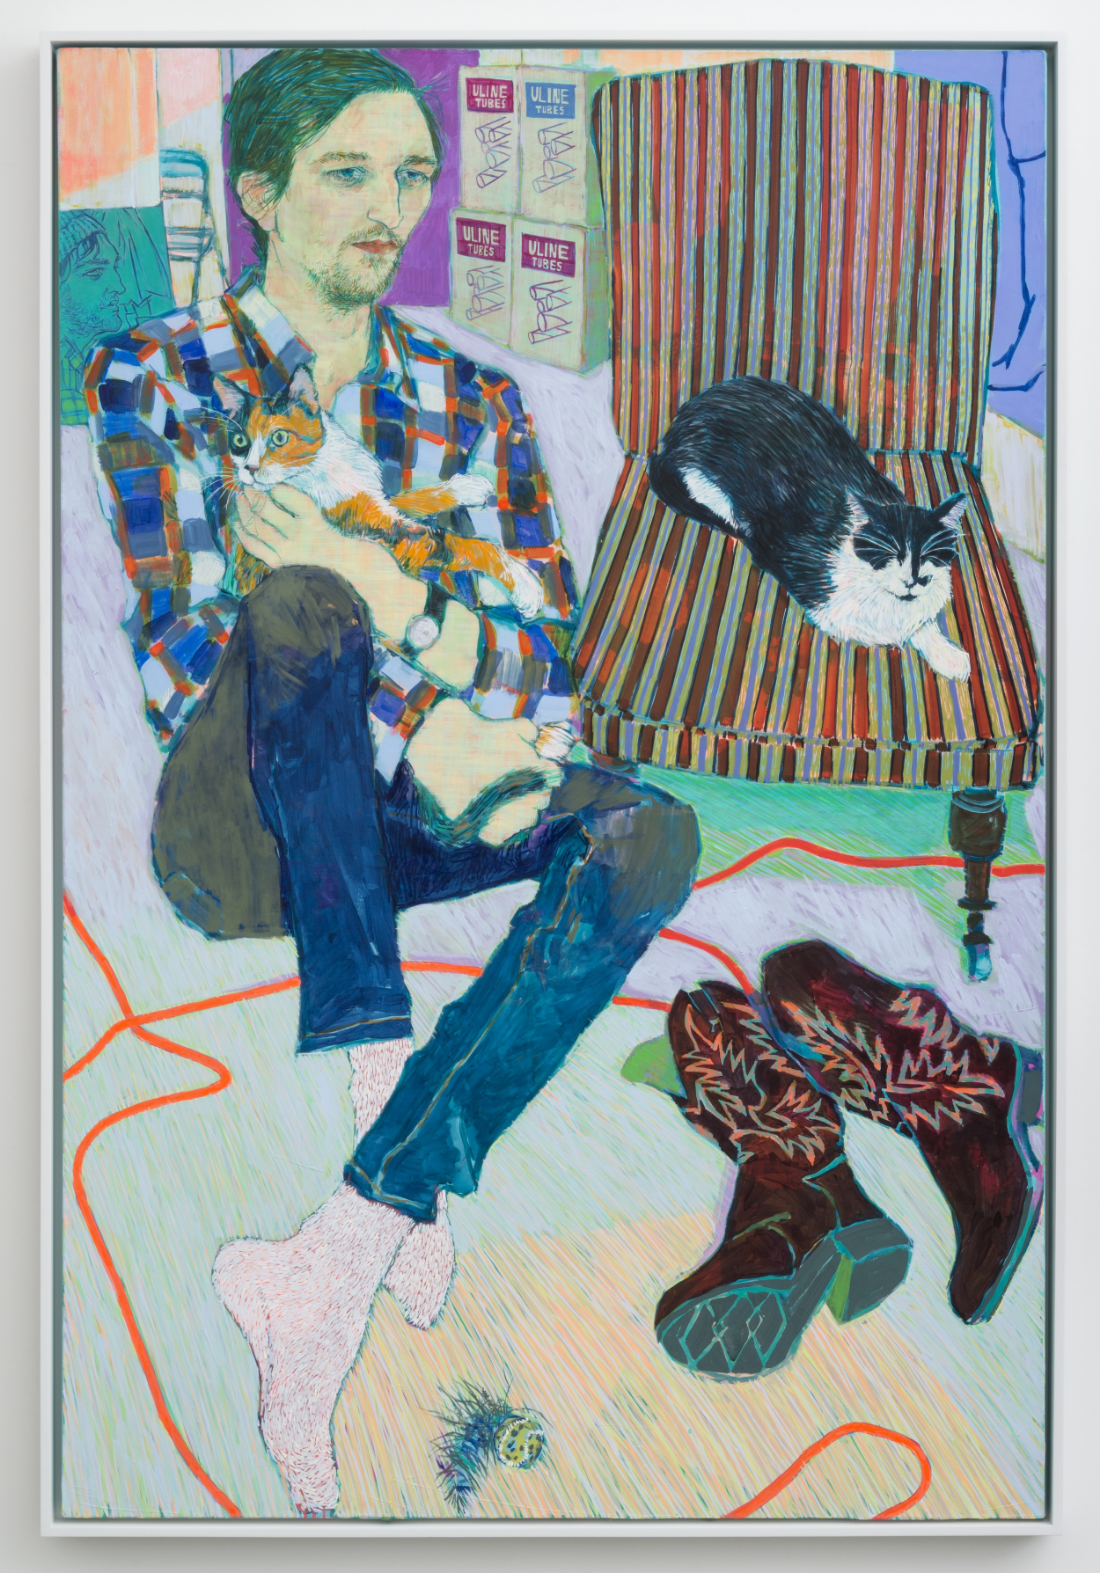 Must Seriously Love Cats (Greg Lindquist) , 2015, Acrylic on canvas, 72 x 48 in., (HG0266), Courtesy: Susan Inglett Gallery, NYC., Photo Credit: Adam Reich, NYC.